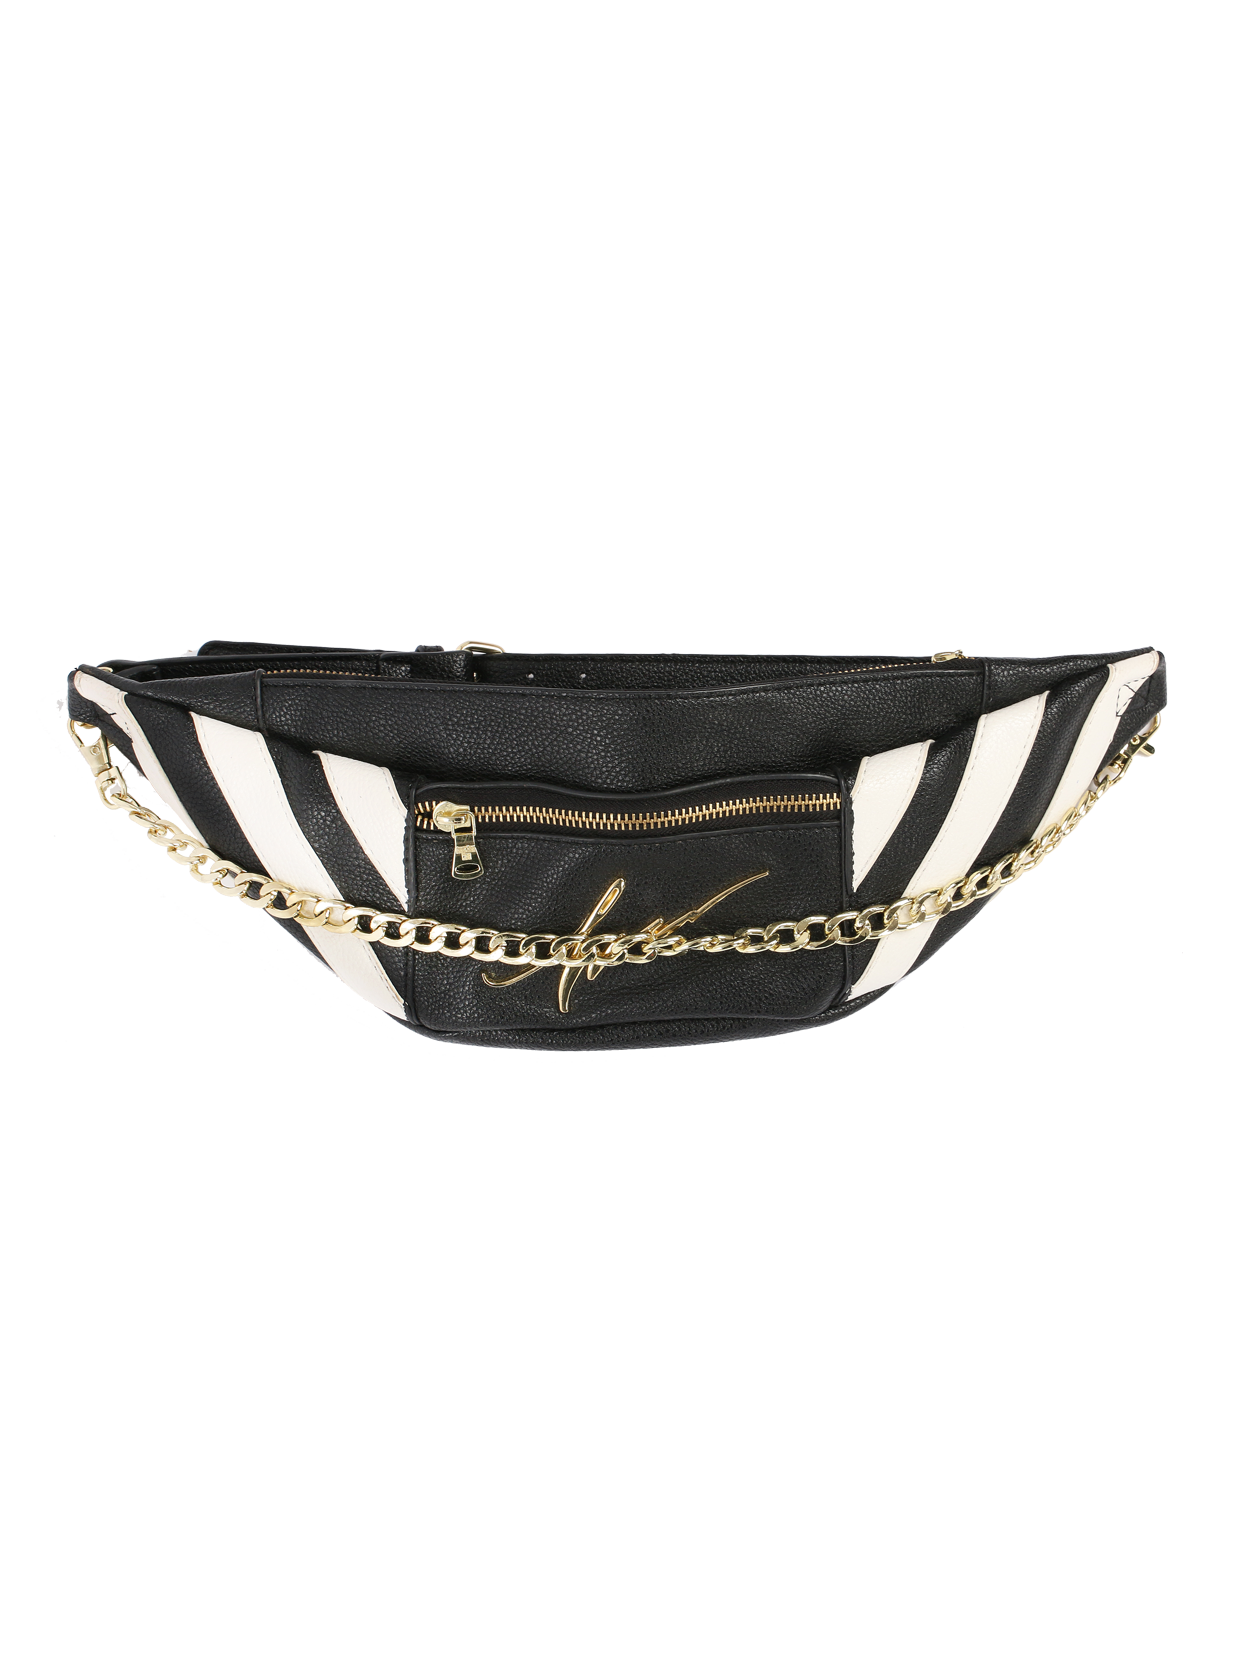 Fanny pack by HannaFanny pack Black Star Wear by Hanna. This small high-quality pack allows you to carry the most necessary things everywhere you go and be sure that they are safe. In front there is a metal Hannas signature. Decorated with contrast stripes and golden furniture.<br><br>size: One size<br>color: Black<br>gender: unisex